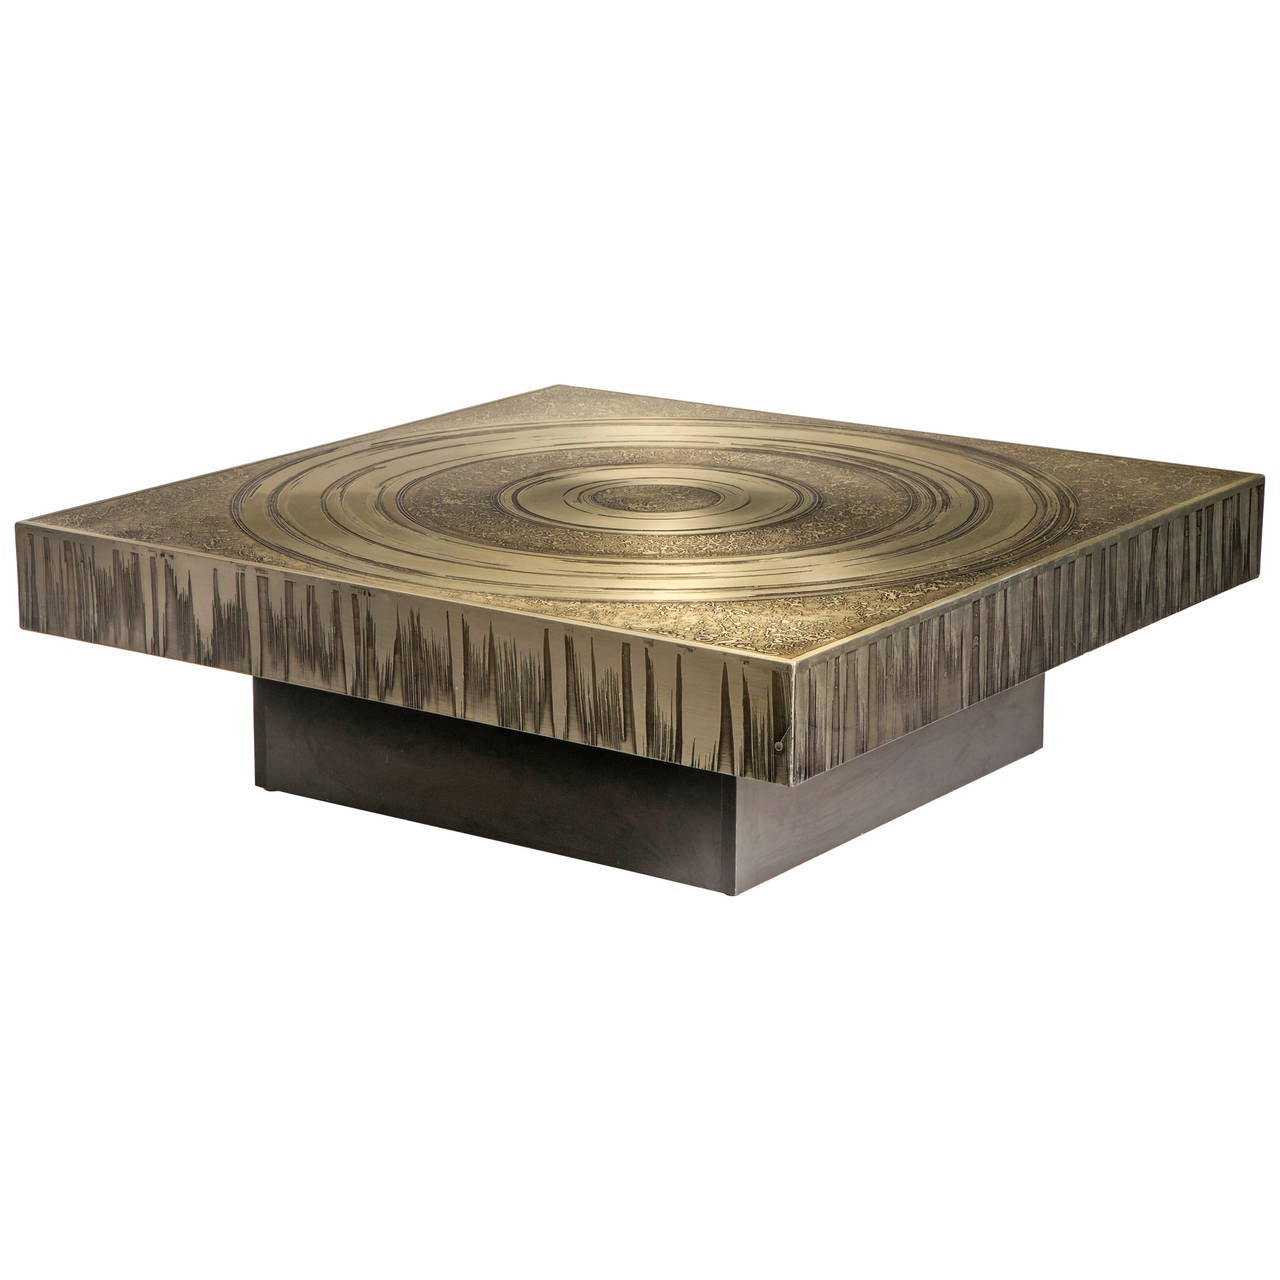 marc d 39 haenens a belgian etched aluminum coffee table at 1stdibs